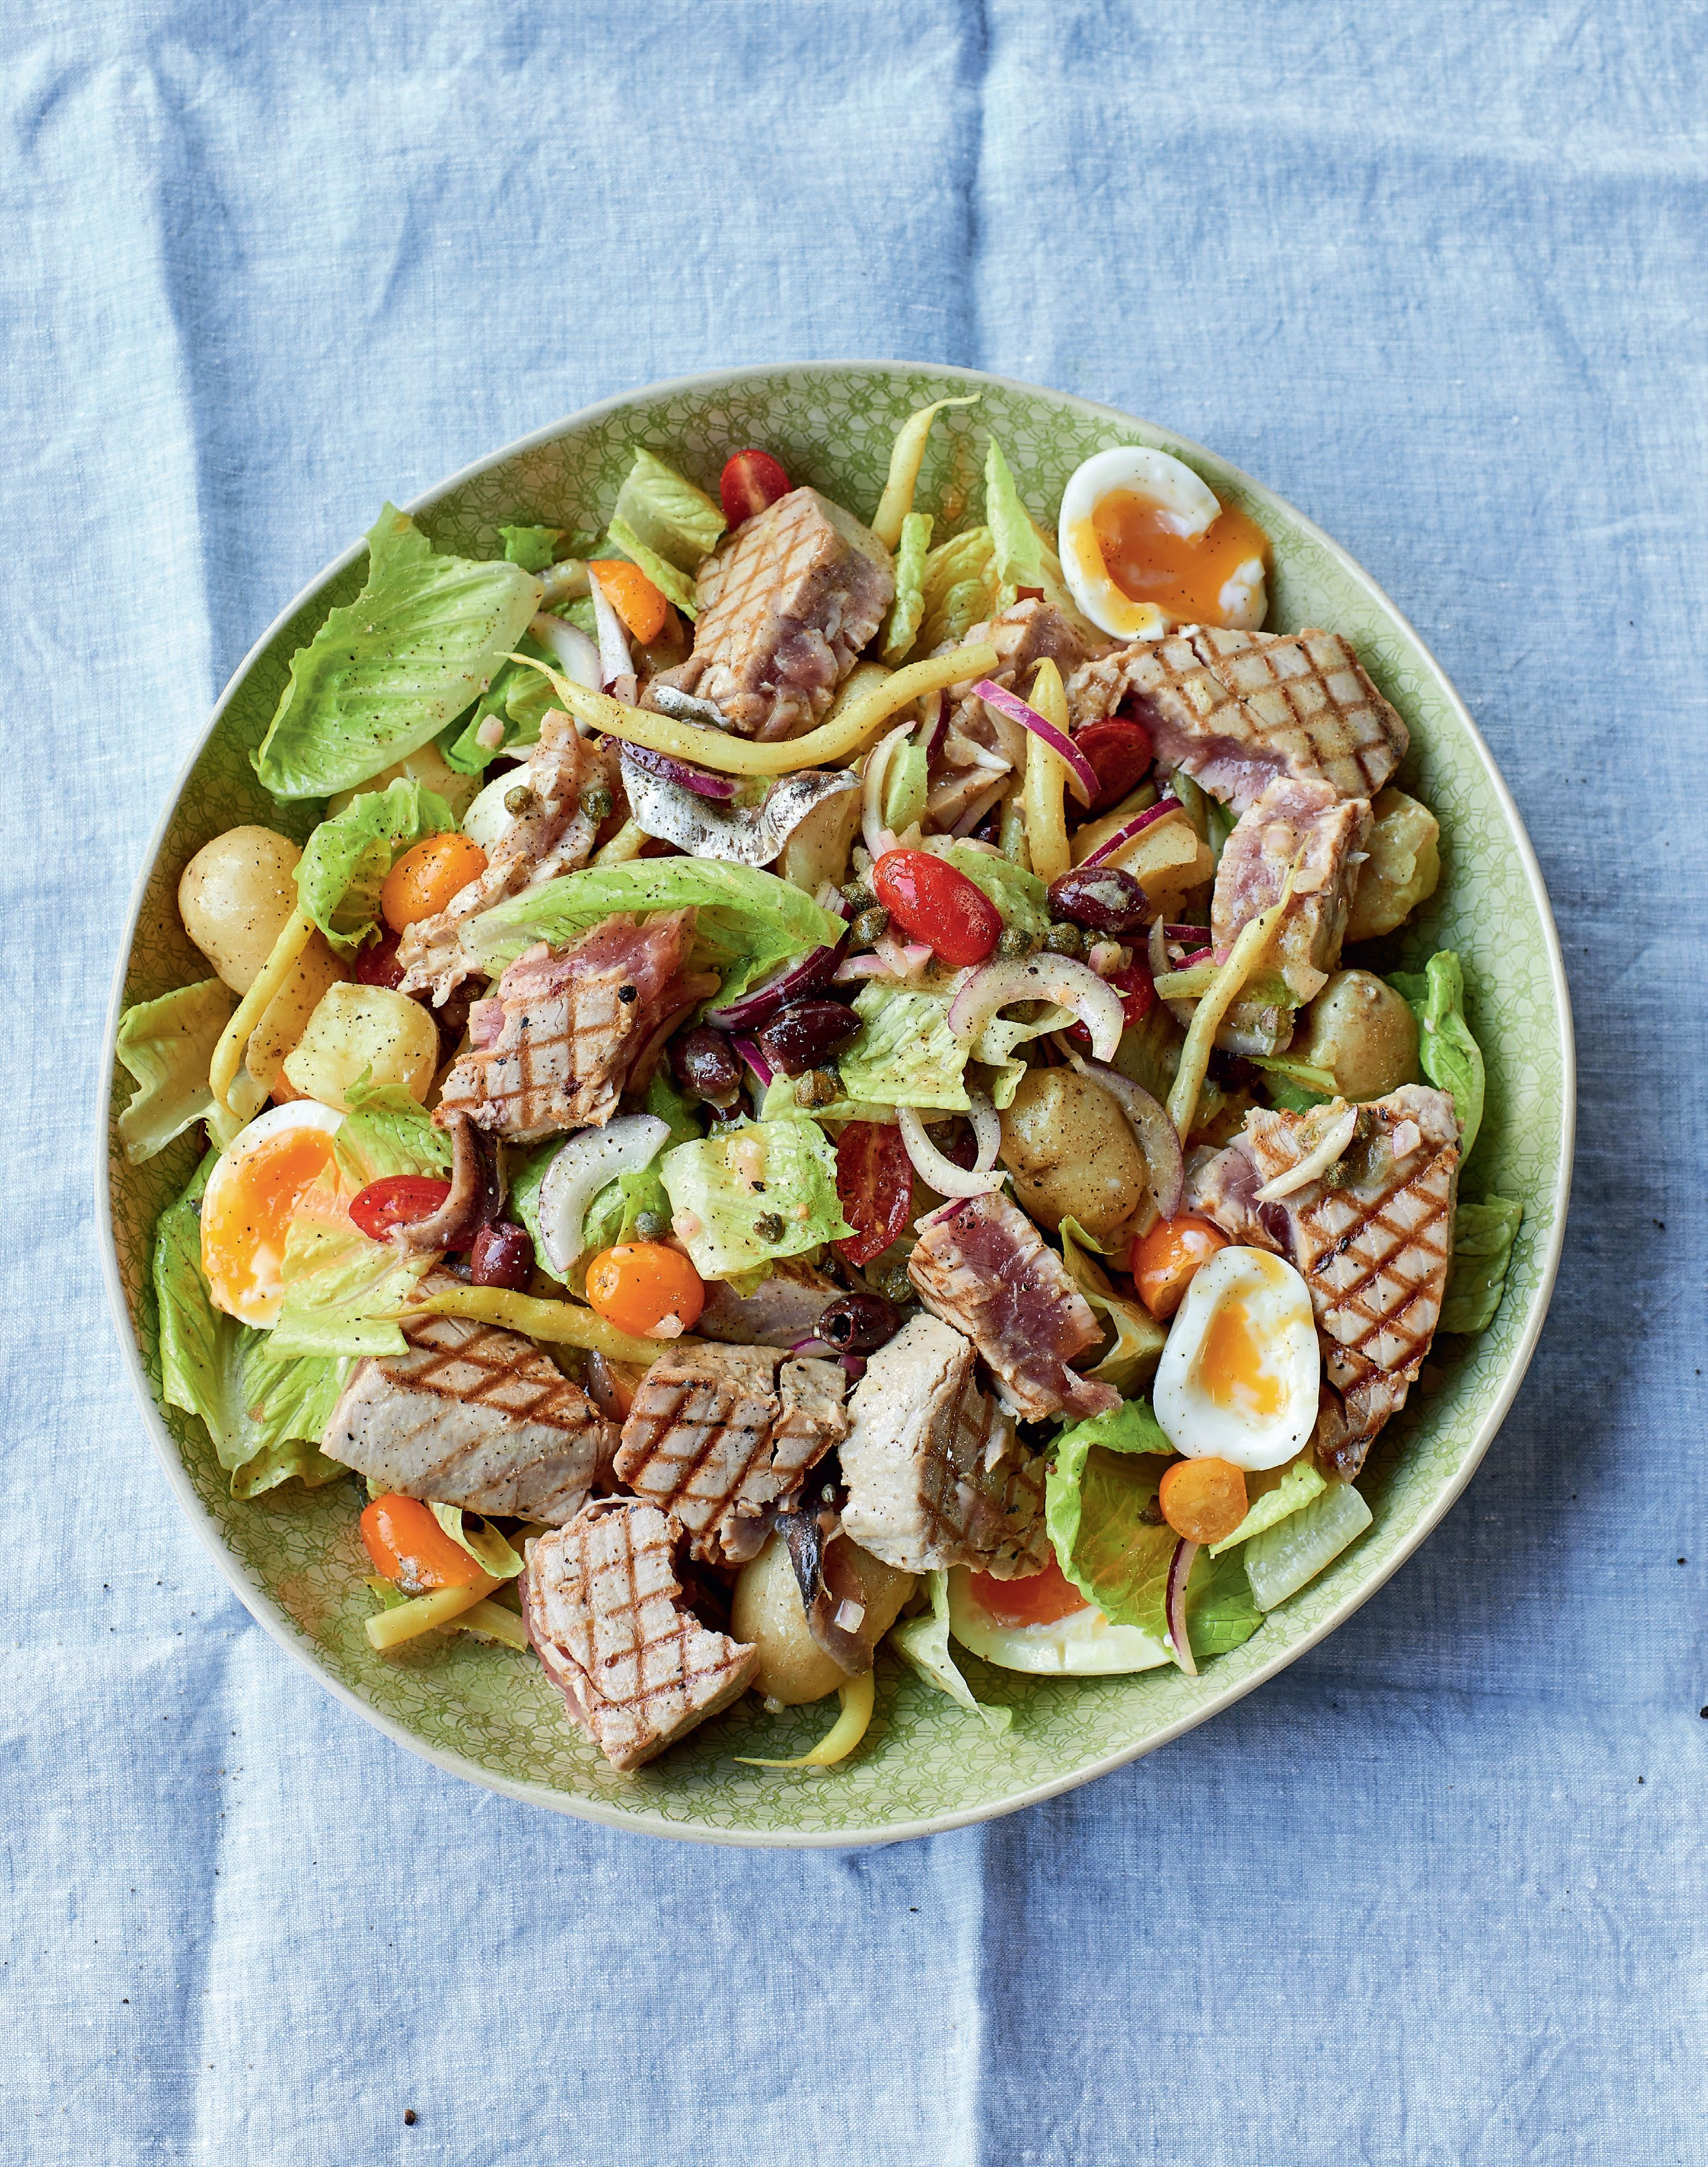 Salade niçoise with griddled tuna